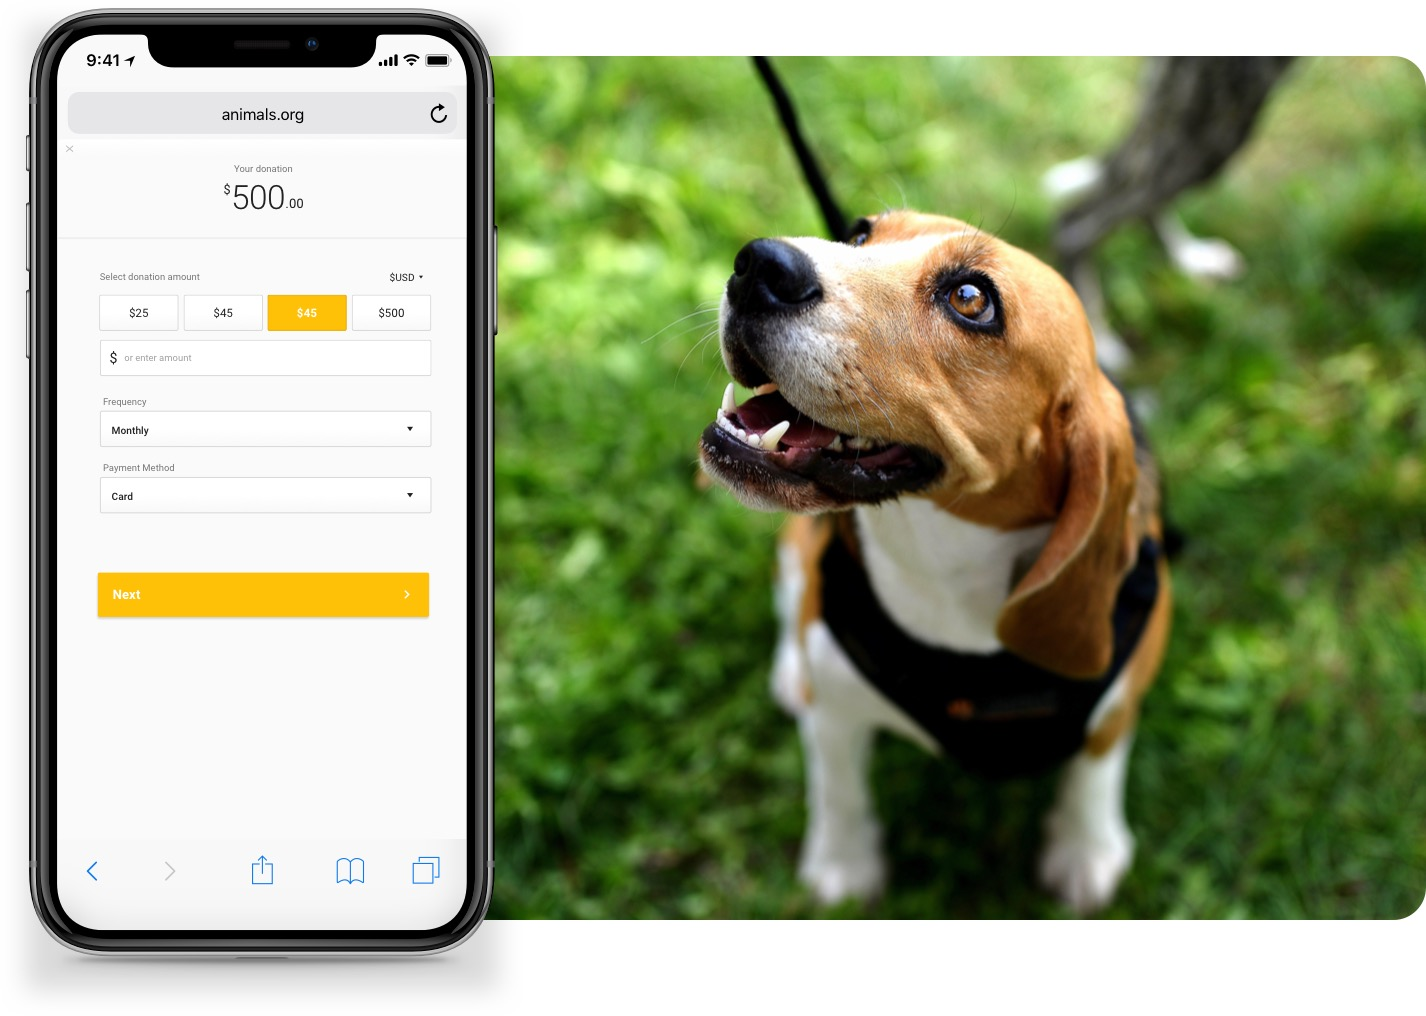 Mobile donation form with a yellow button, shown on a smartphone. All next to an animal fundraising site with a sweet puppy on it!